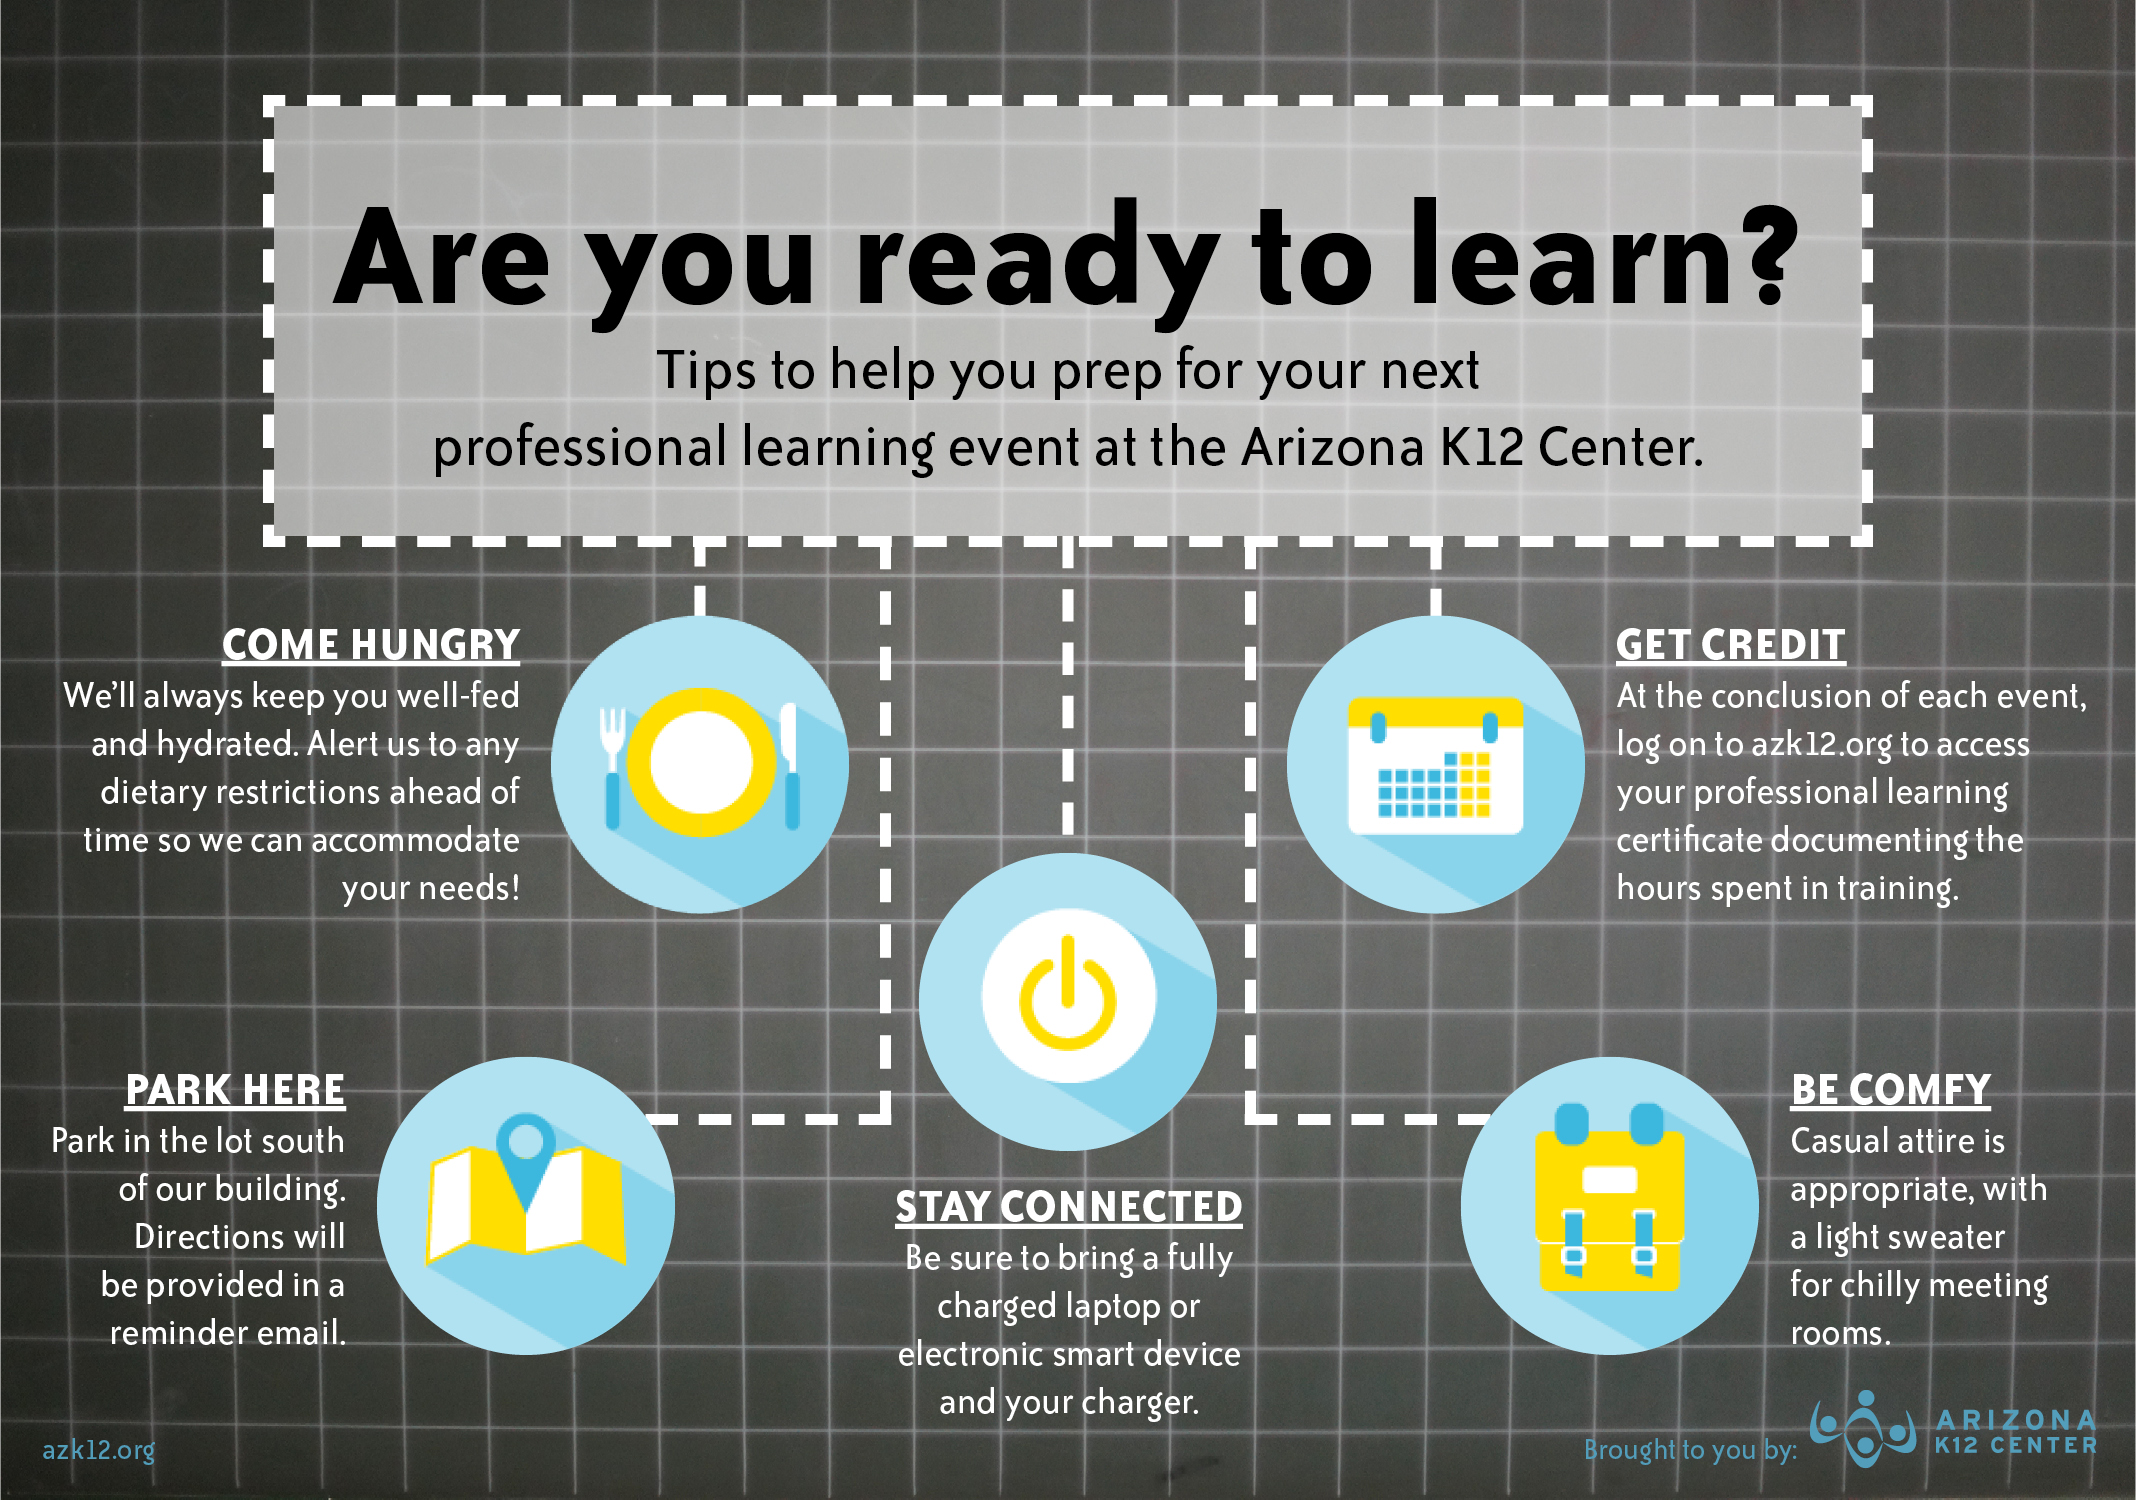 Tips for Learning with the Arizona K12 Center